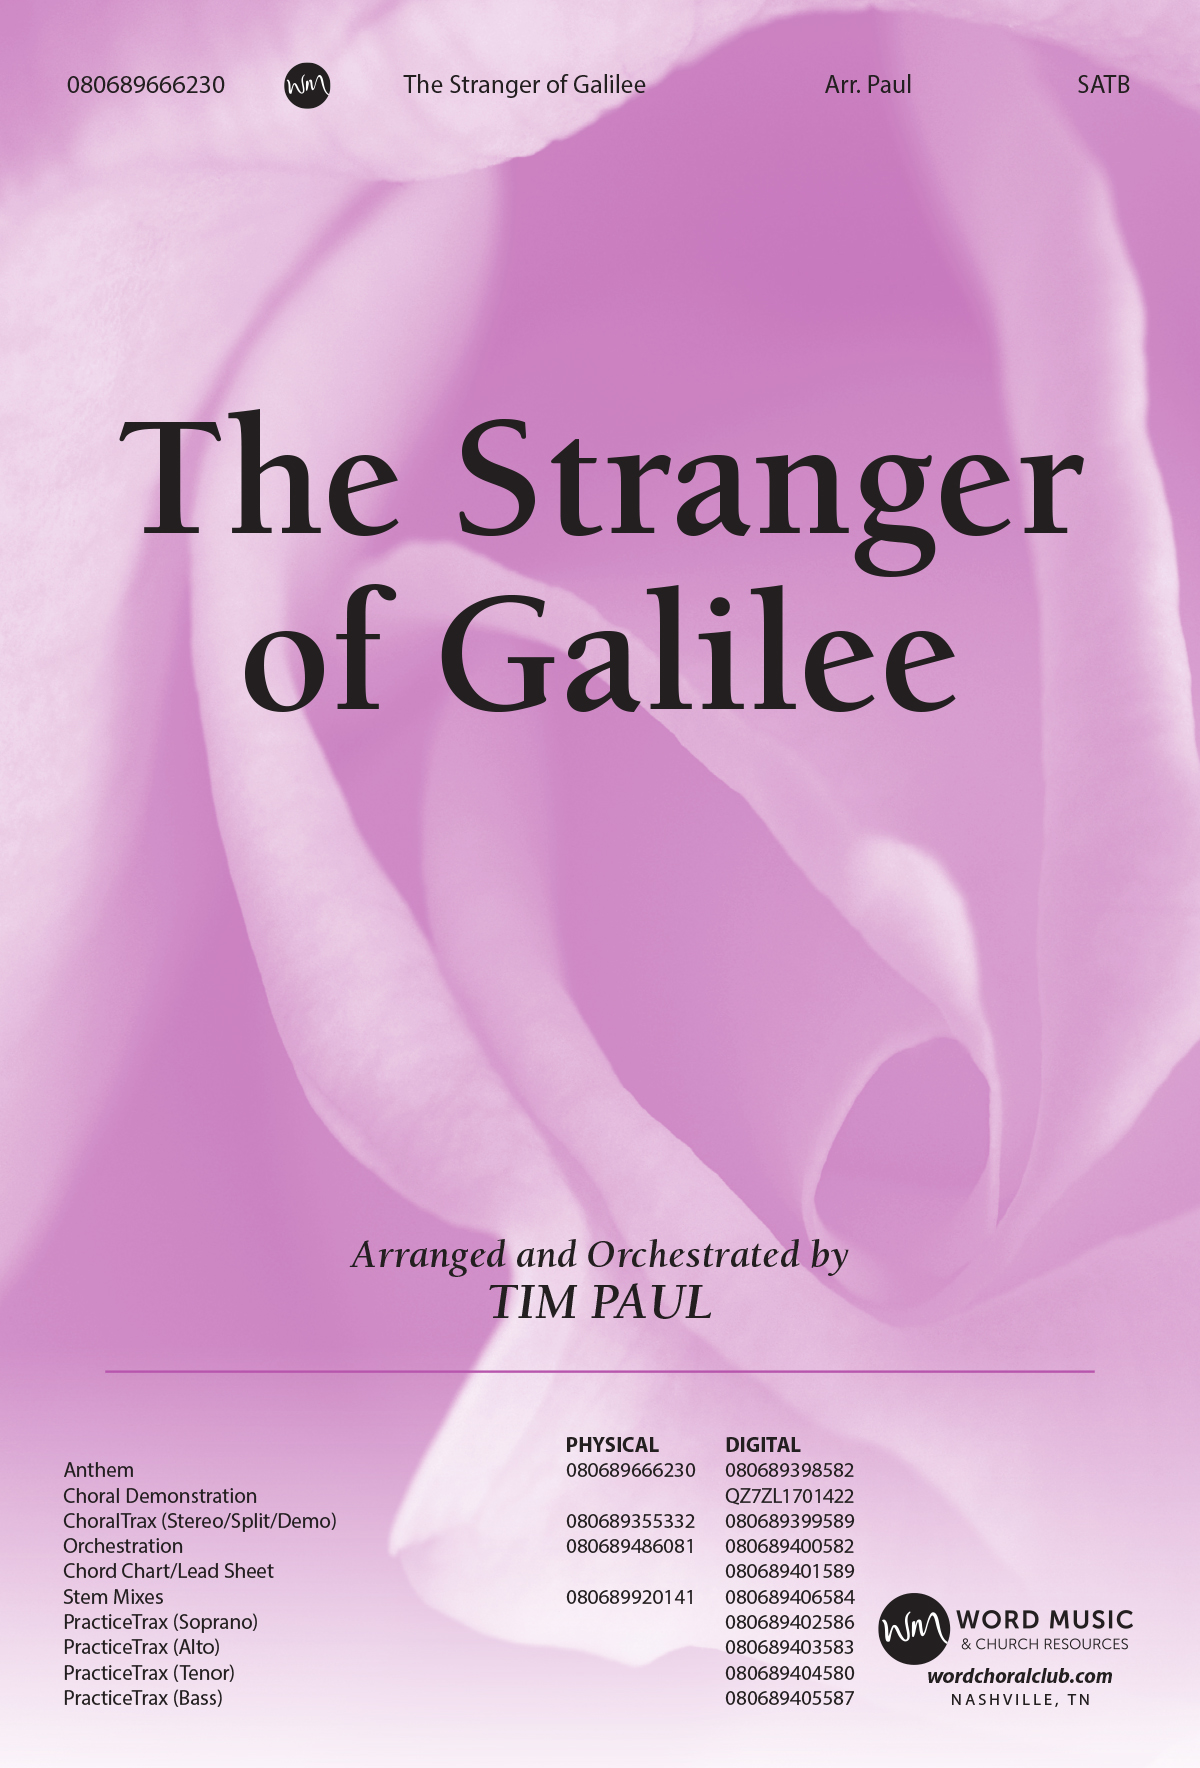 The Stranger of Galilee